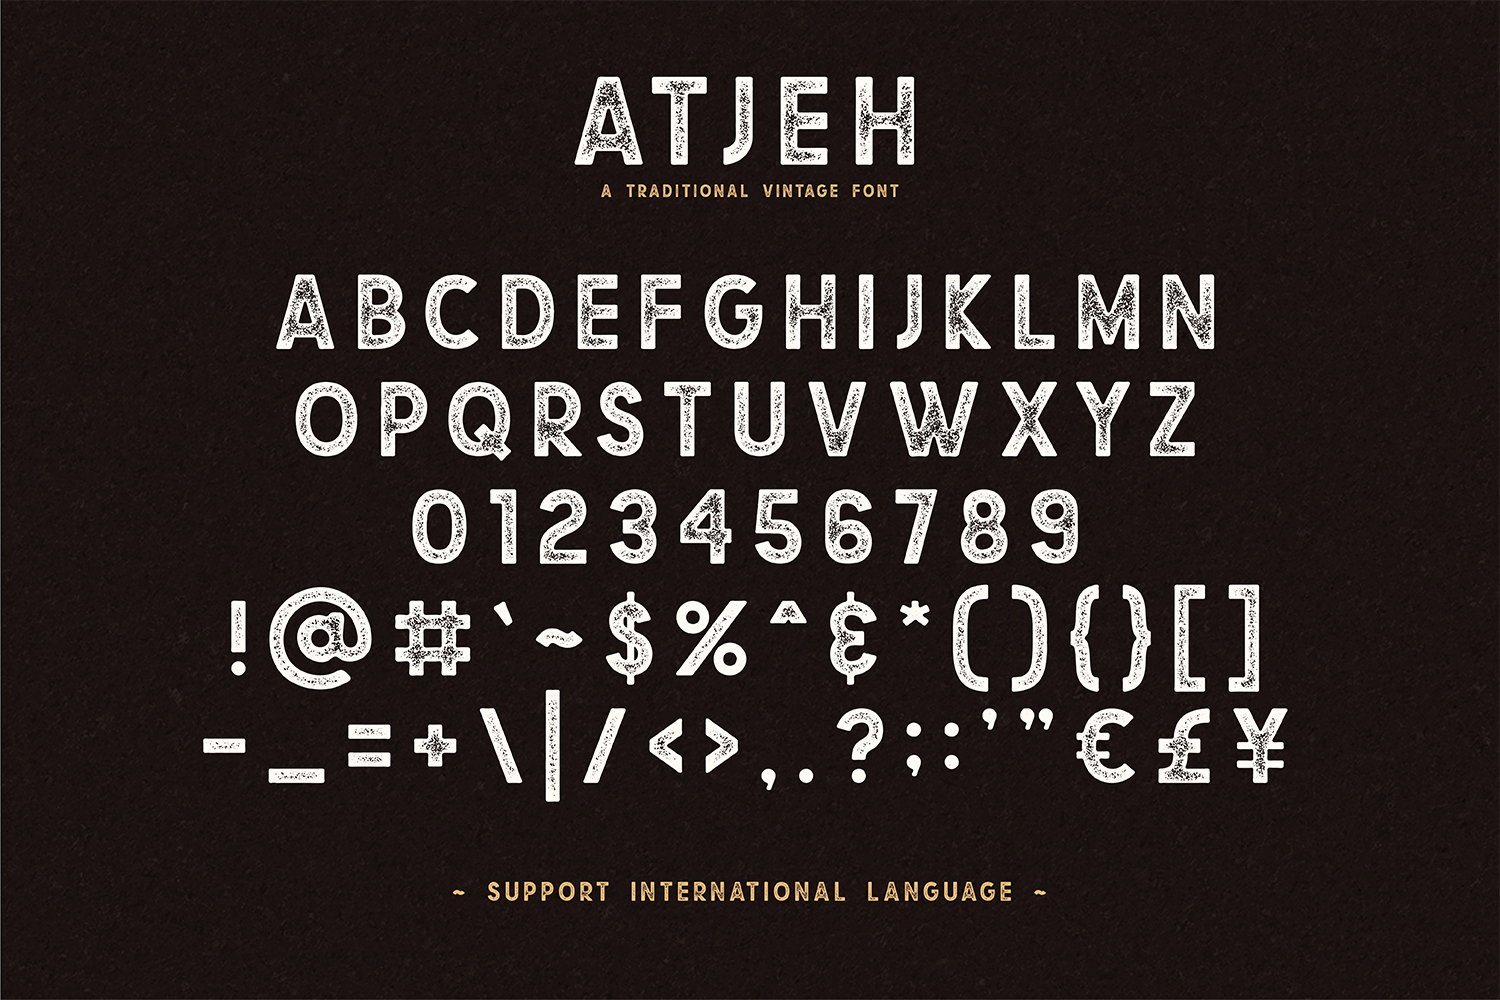 Atjeh - A Traditional Vintage Font | 4 Font Files example image 5